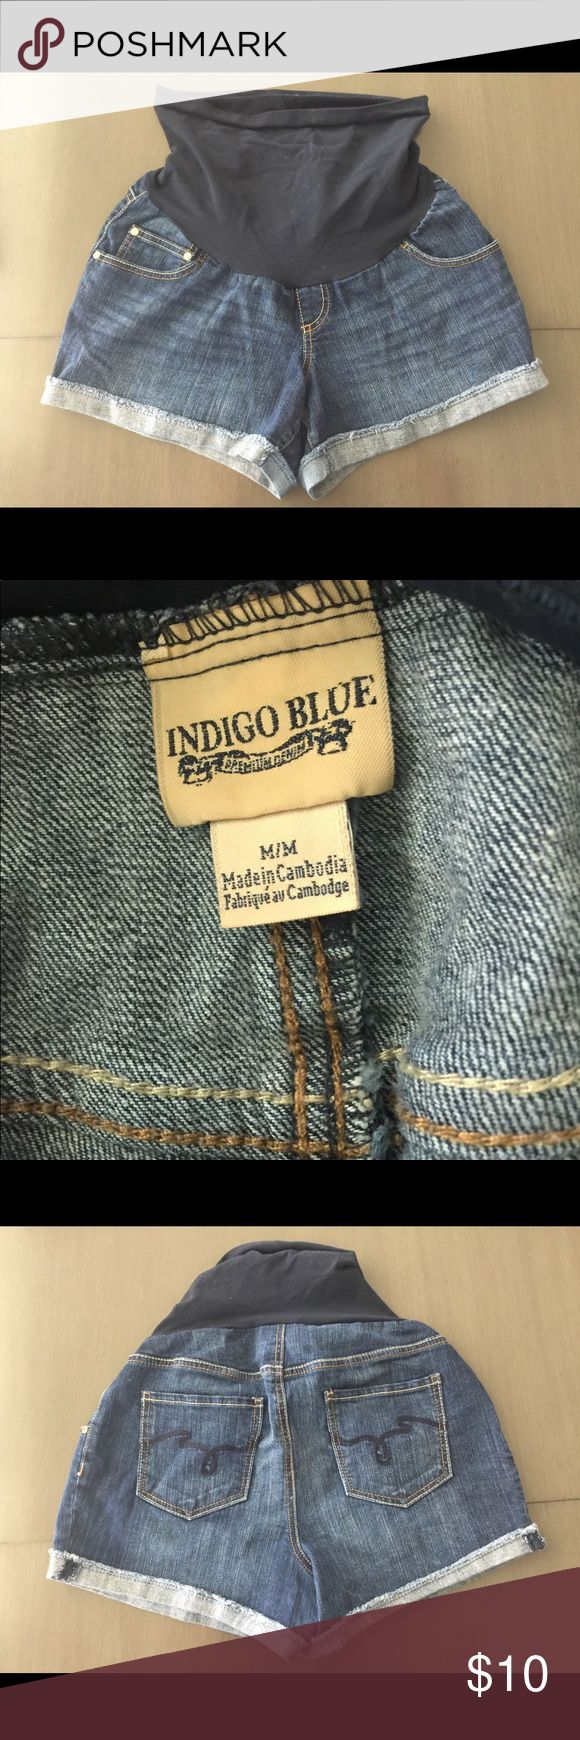 Motherhood Maternity Shorts indigo blue brand purchased from motherhood few years ago. gently worn, great condition, a lot of wear left in them. smoke free home. Indigo Blue Shorts Jean Shorts